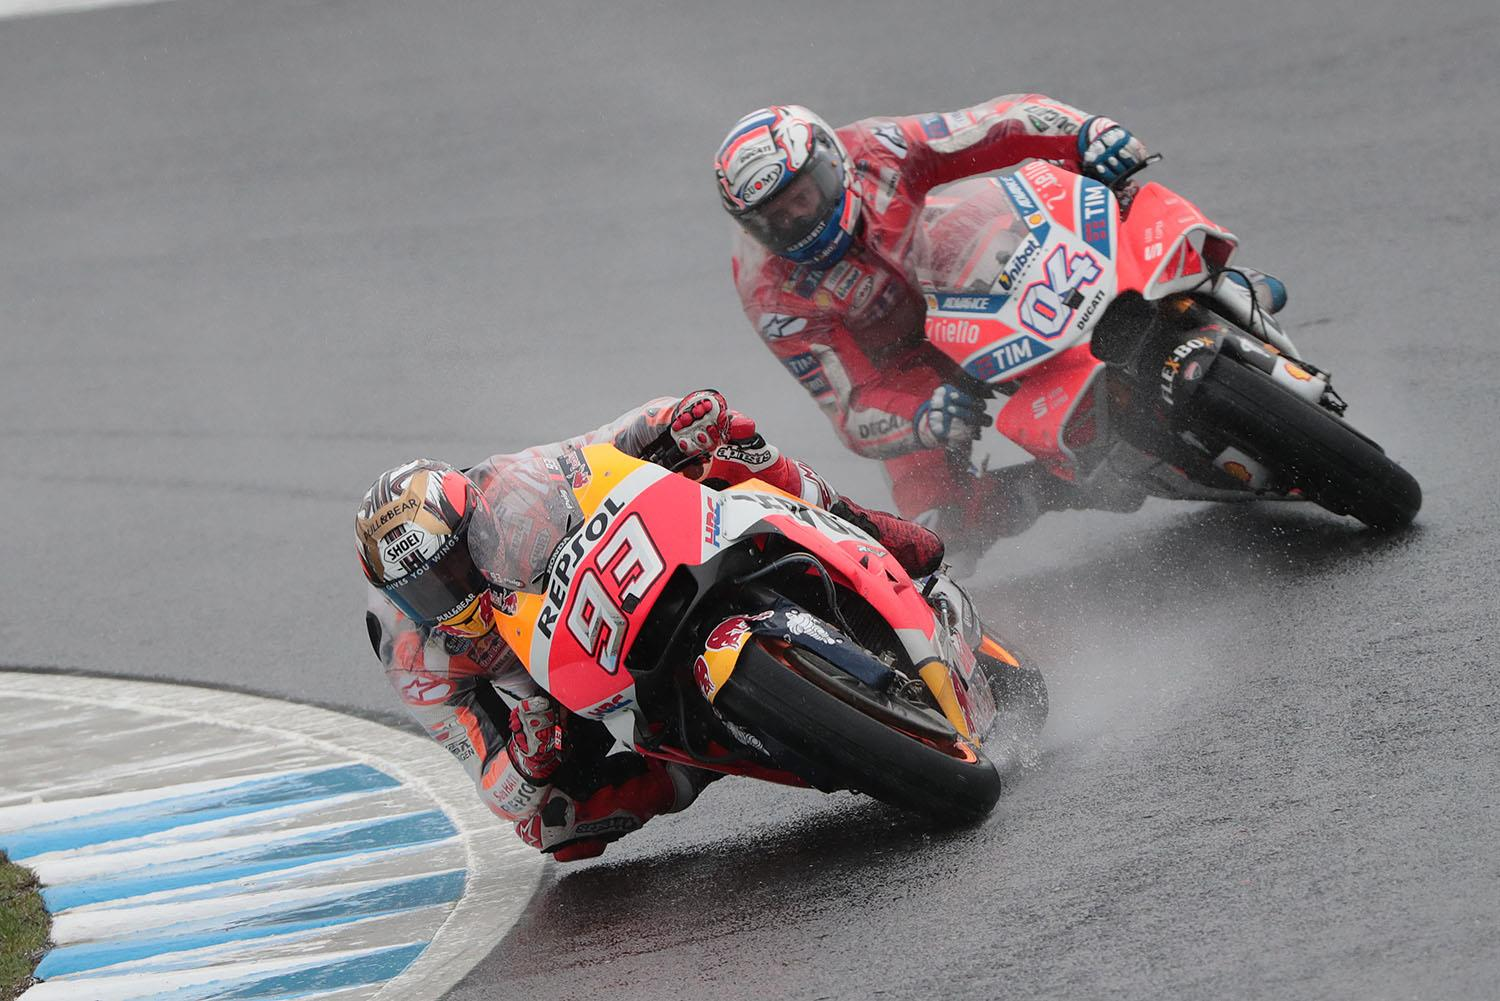 Dani Pedrosa on pole in Malaysia as Marc Marquez tumbles